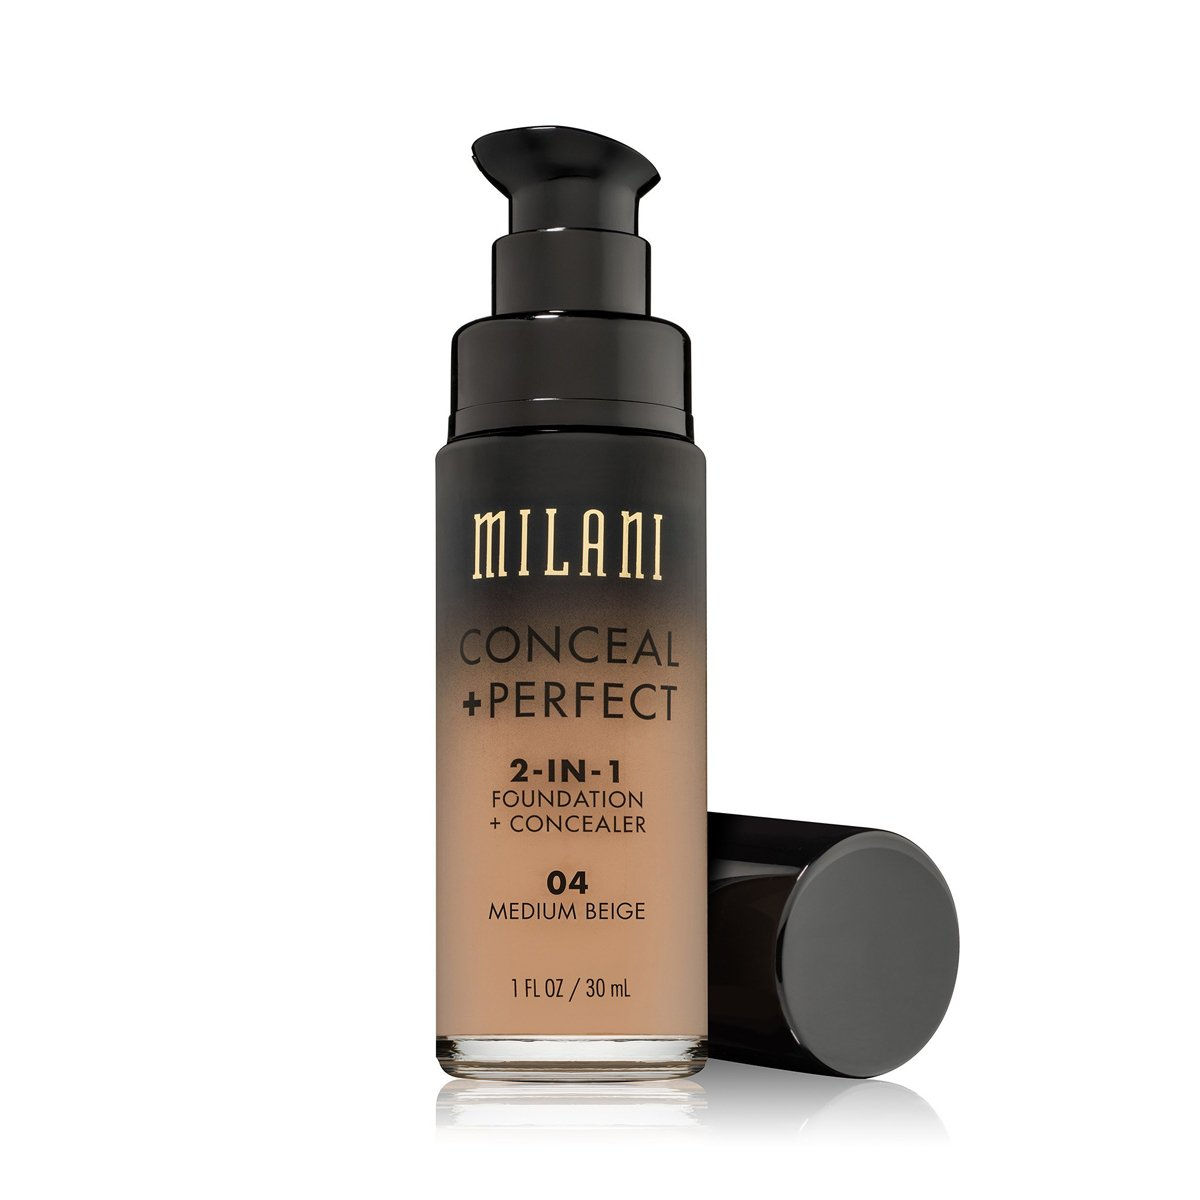 (3 Pack) MILANI Conceal + Perfect 2-In-1 Foundation + Concealer - Medium Beige